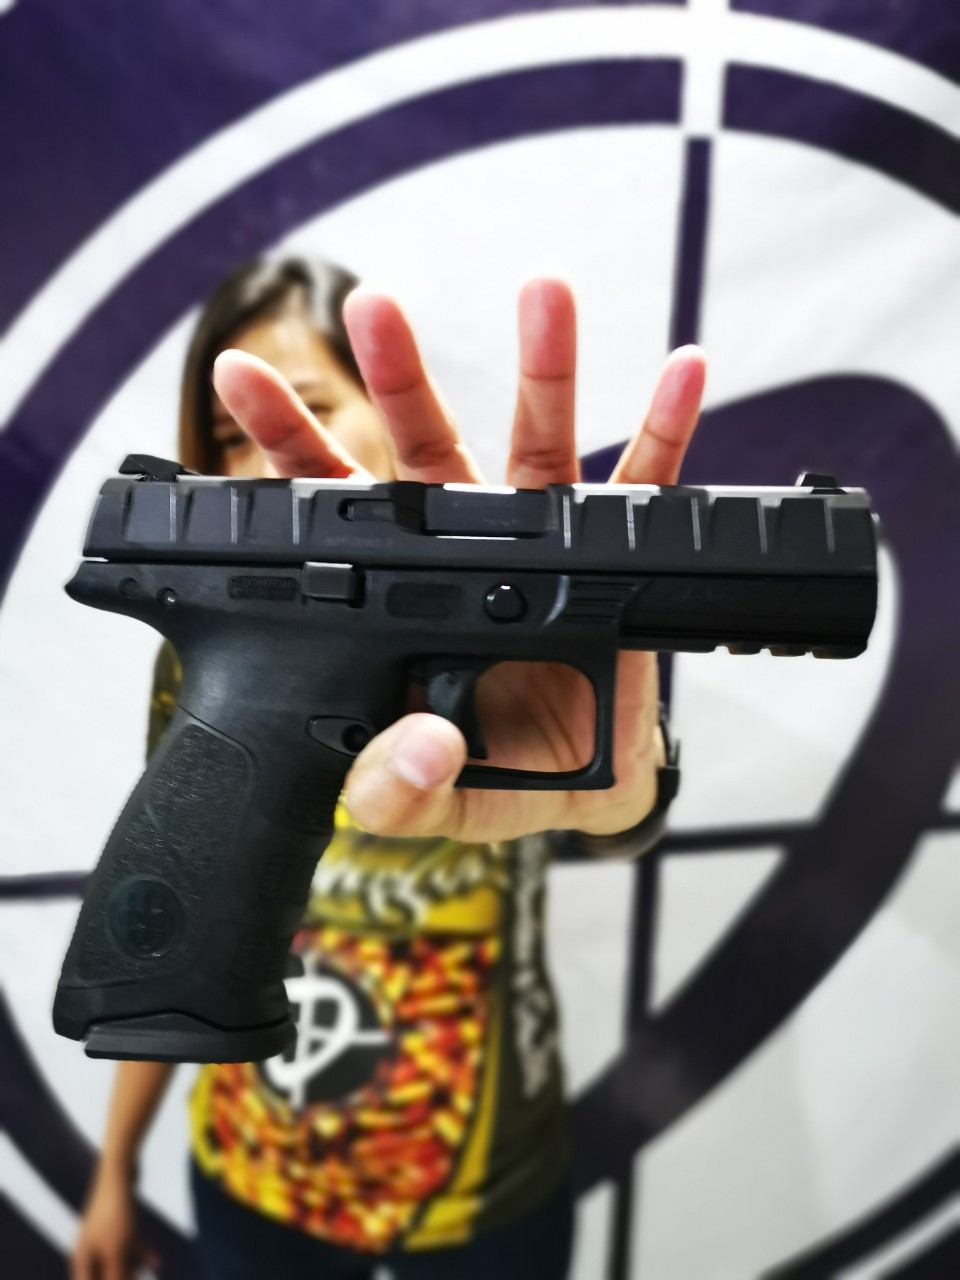 The Beretta APX is pefect for every day carry.  Available now at P.B.Dionisio & Co.